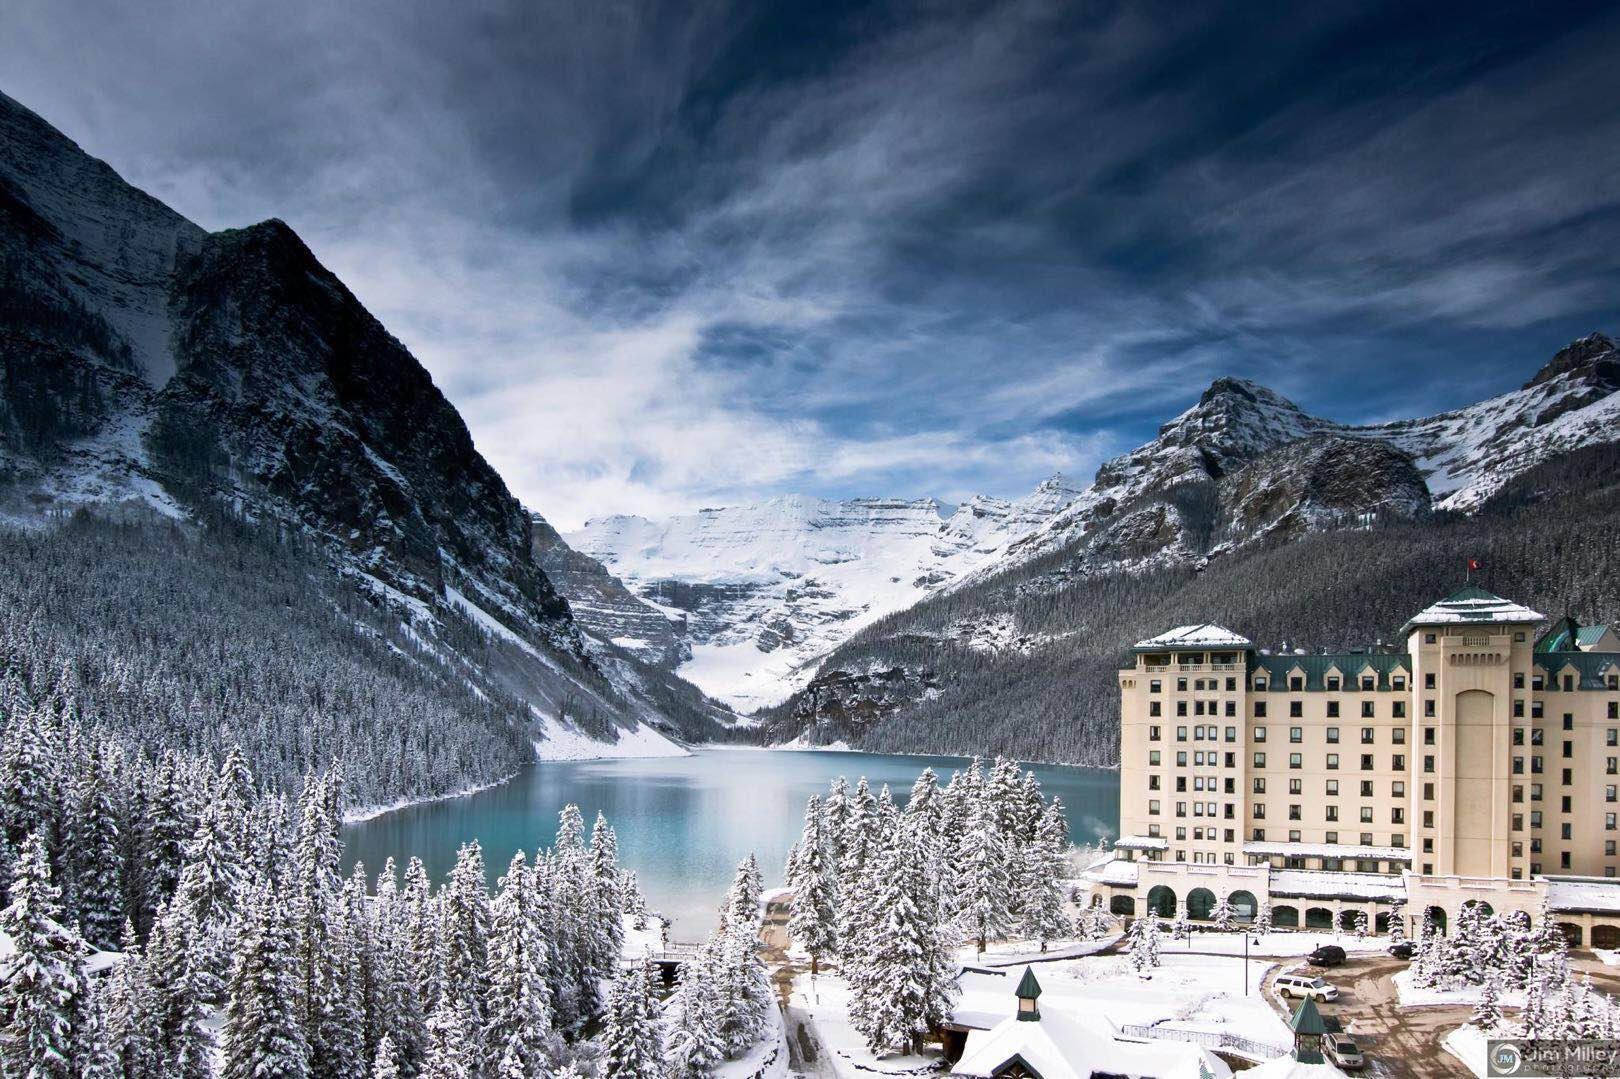 4-Day Rockies Winter Tour from Calgary: Banff Hot Spring, Banff Gondola, Columbia Icefield, Johnston Canyon